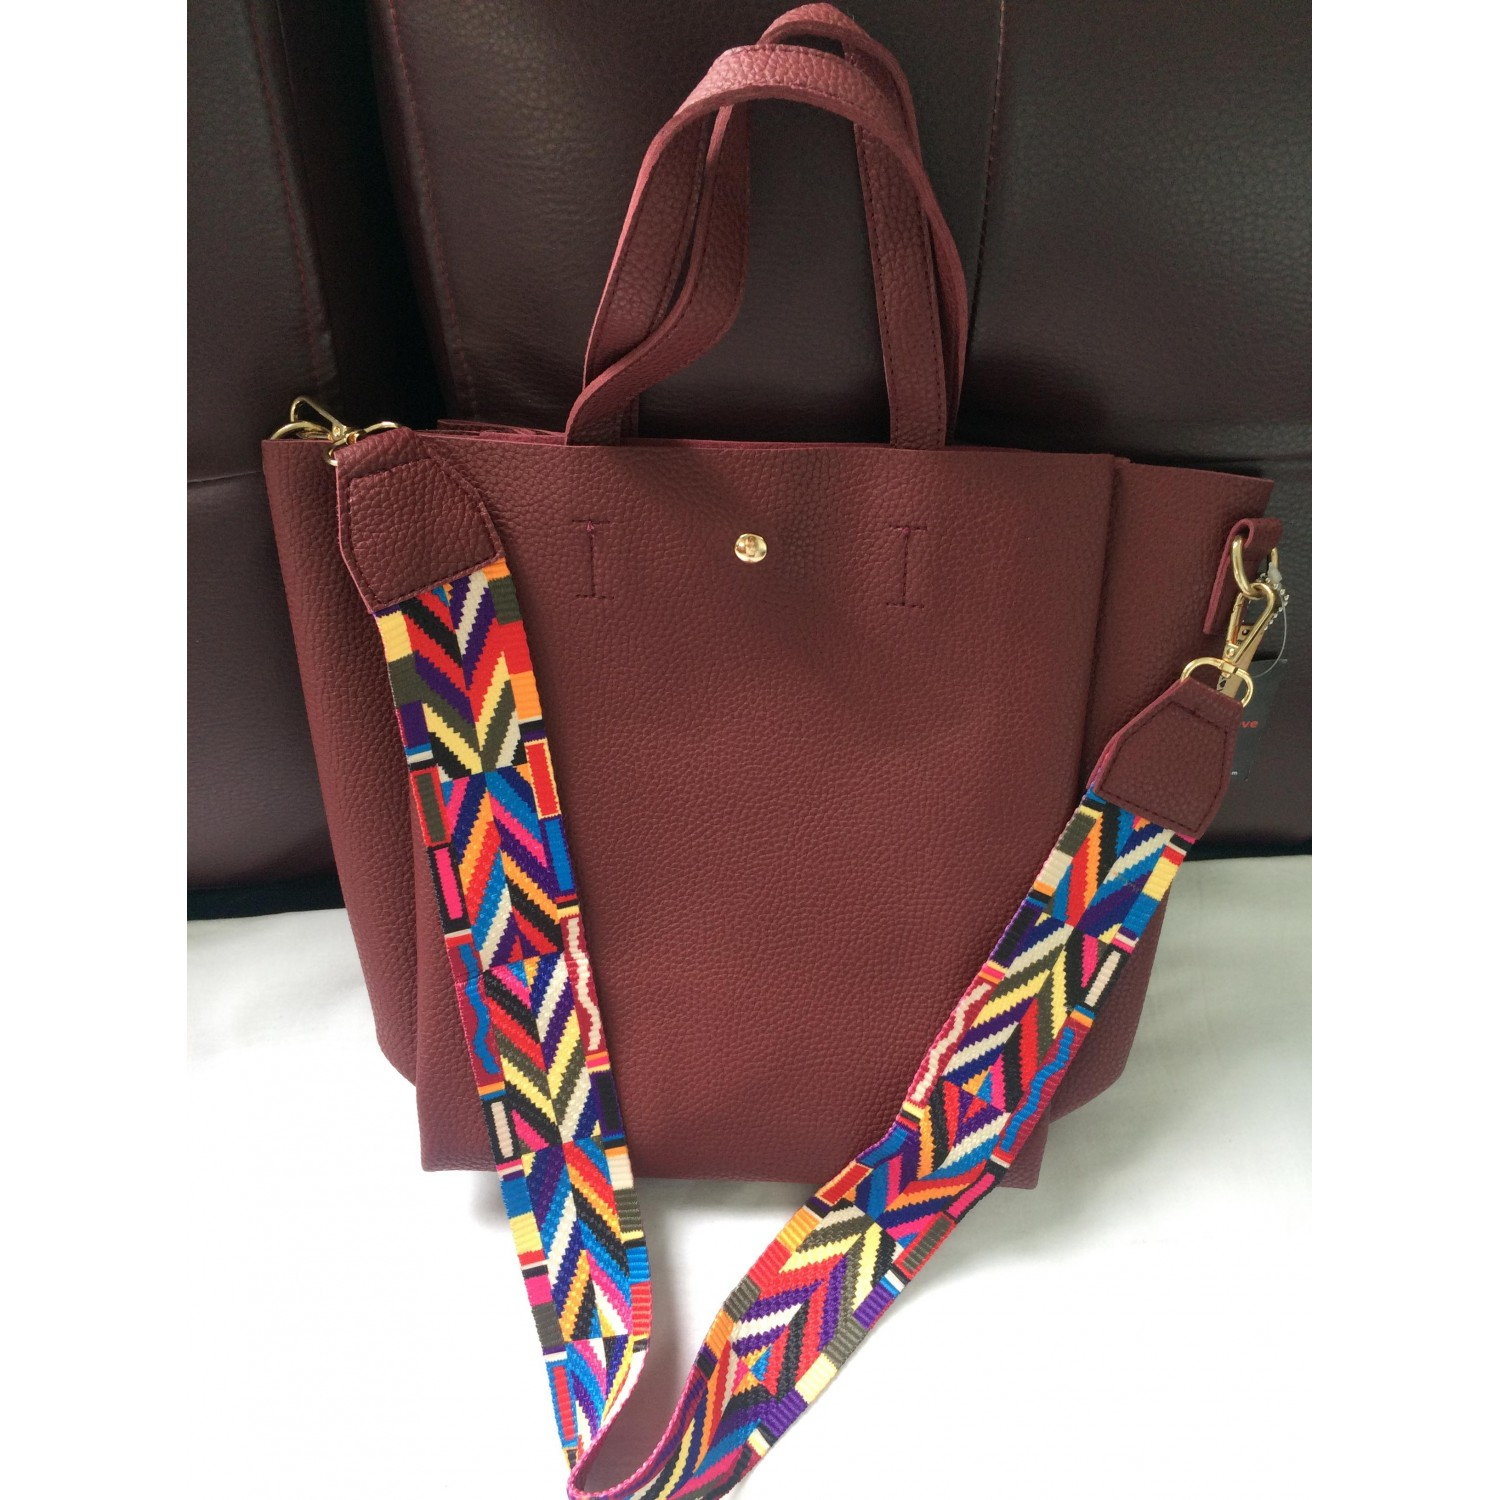 "Z ""Bohemian feel"" bag with colorful tribal graphic strap"